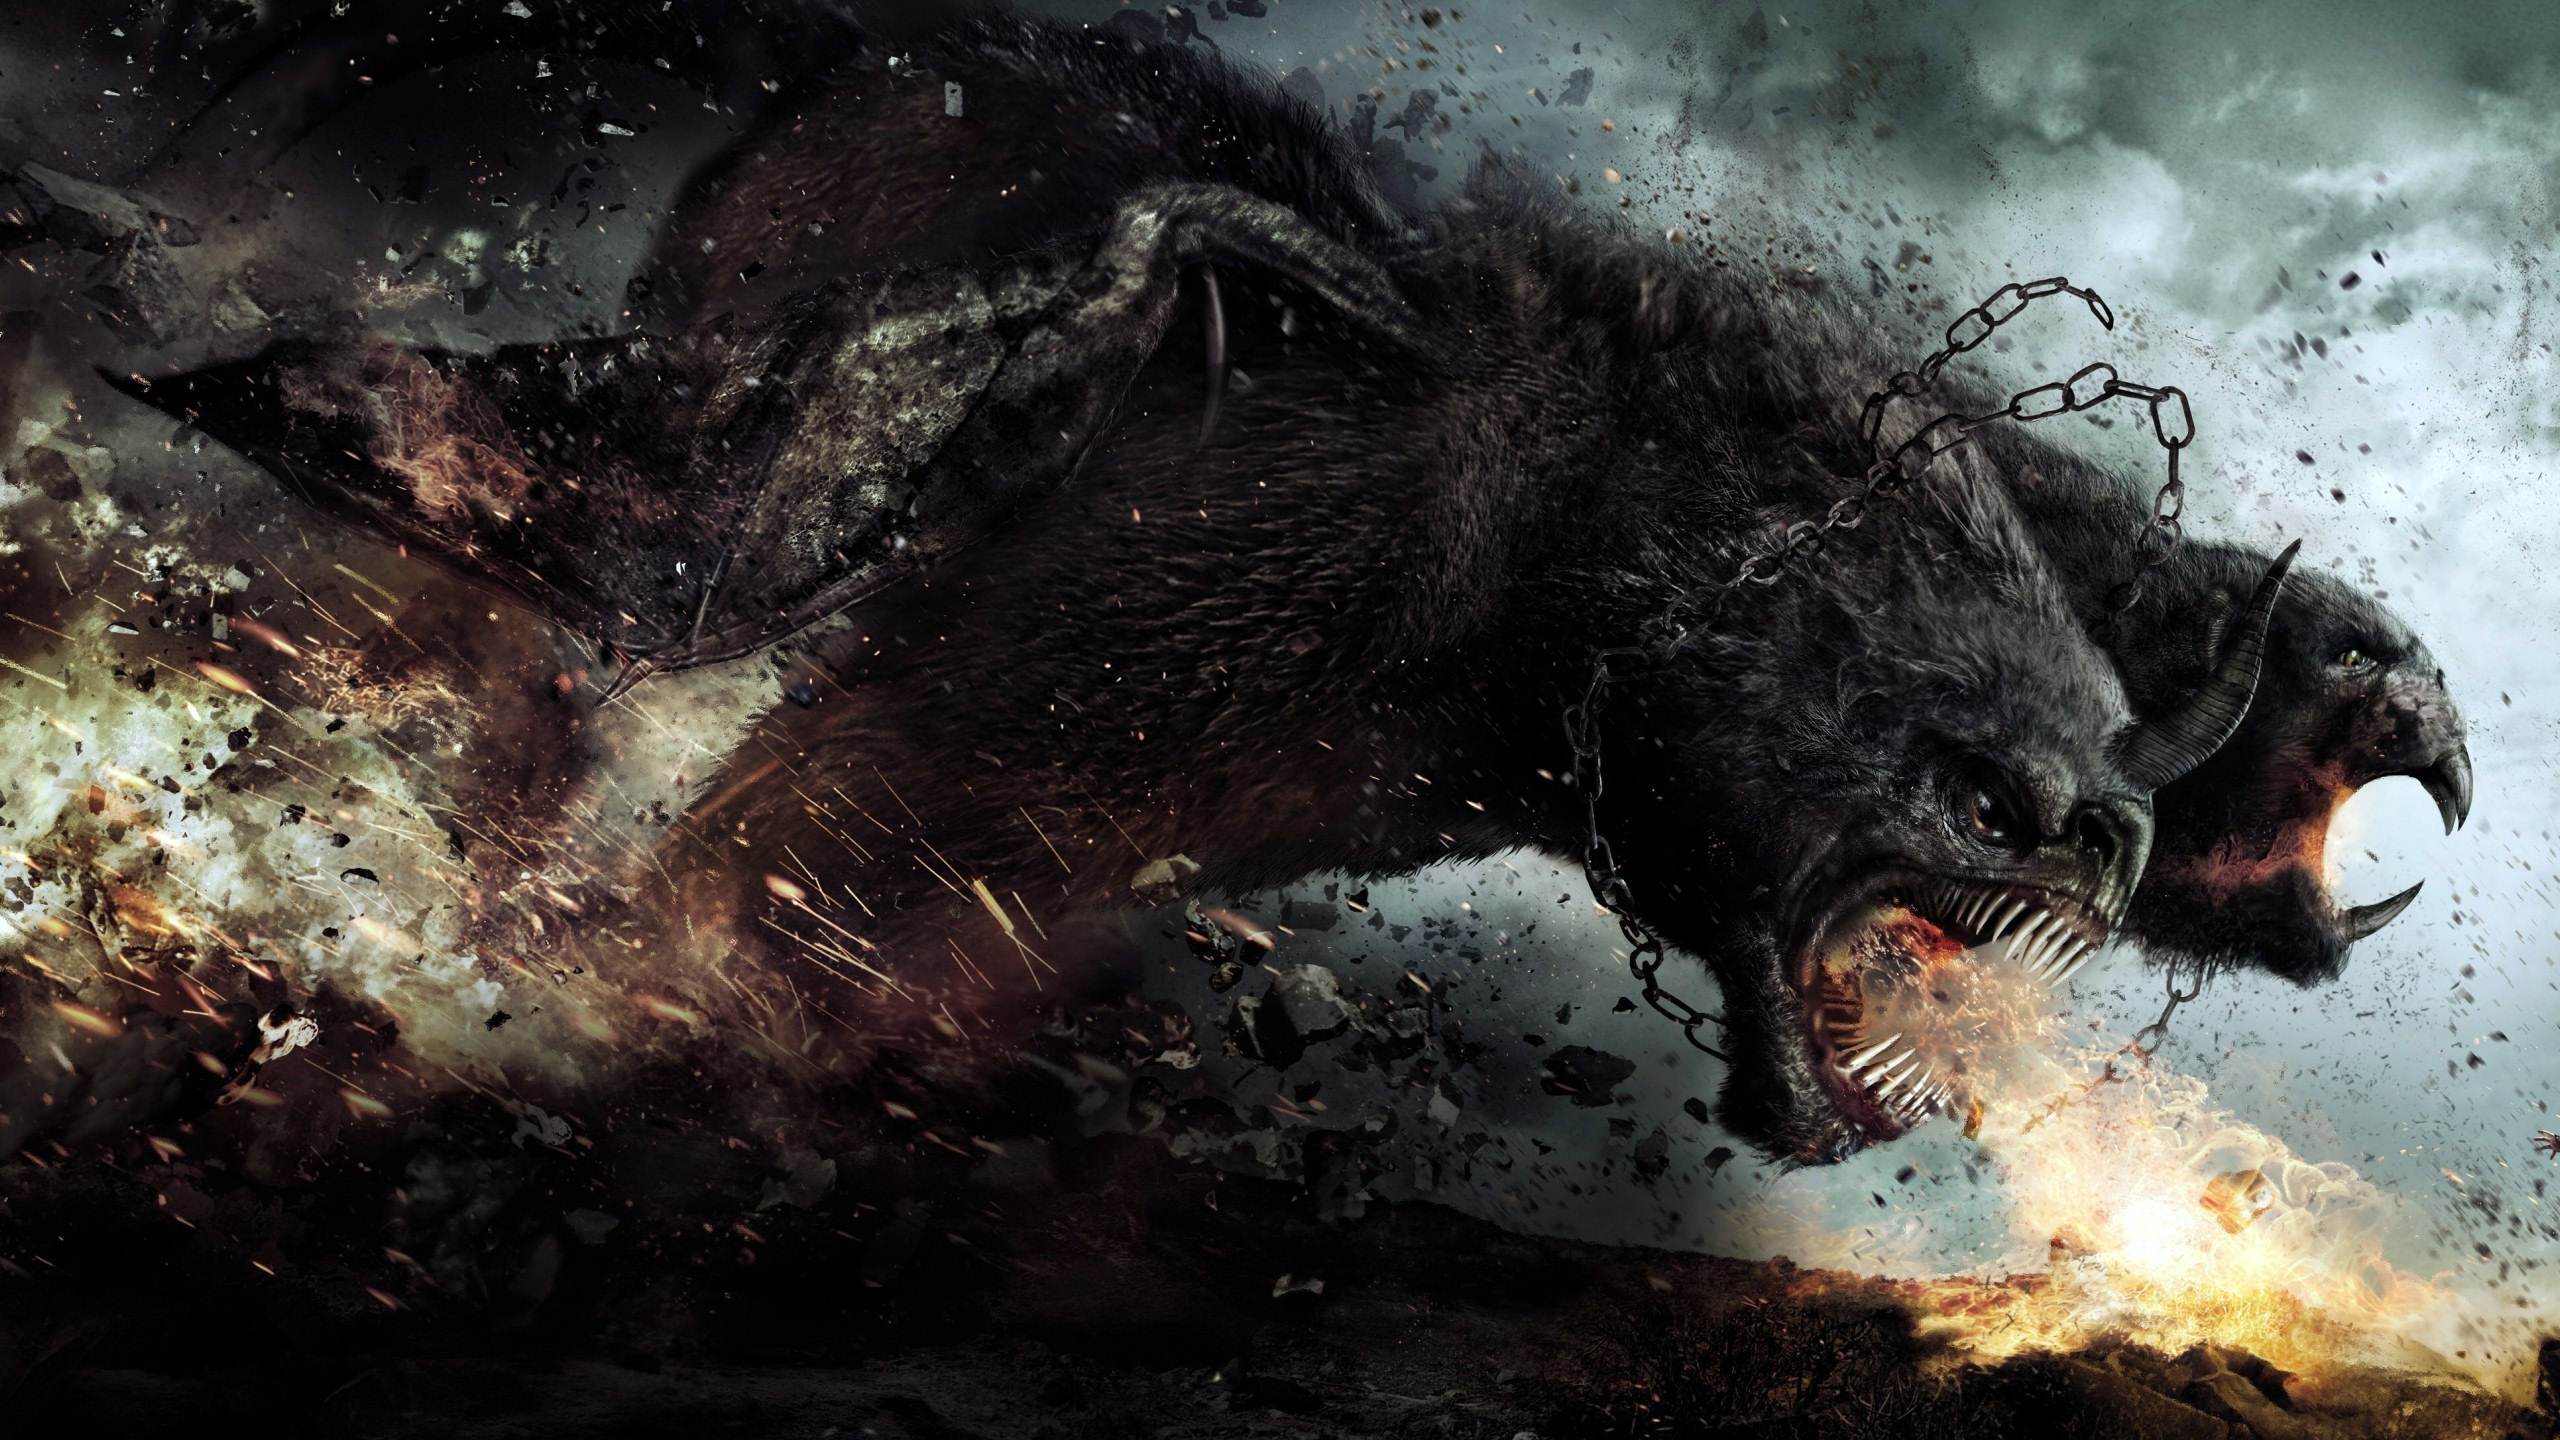 Wrath of The Titans Movie Wallpaper Background 58204 2560x1440px 2560x1440